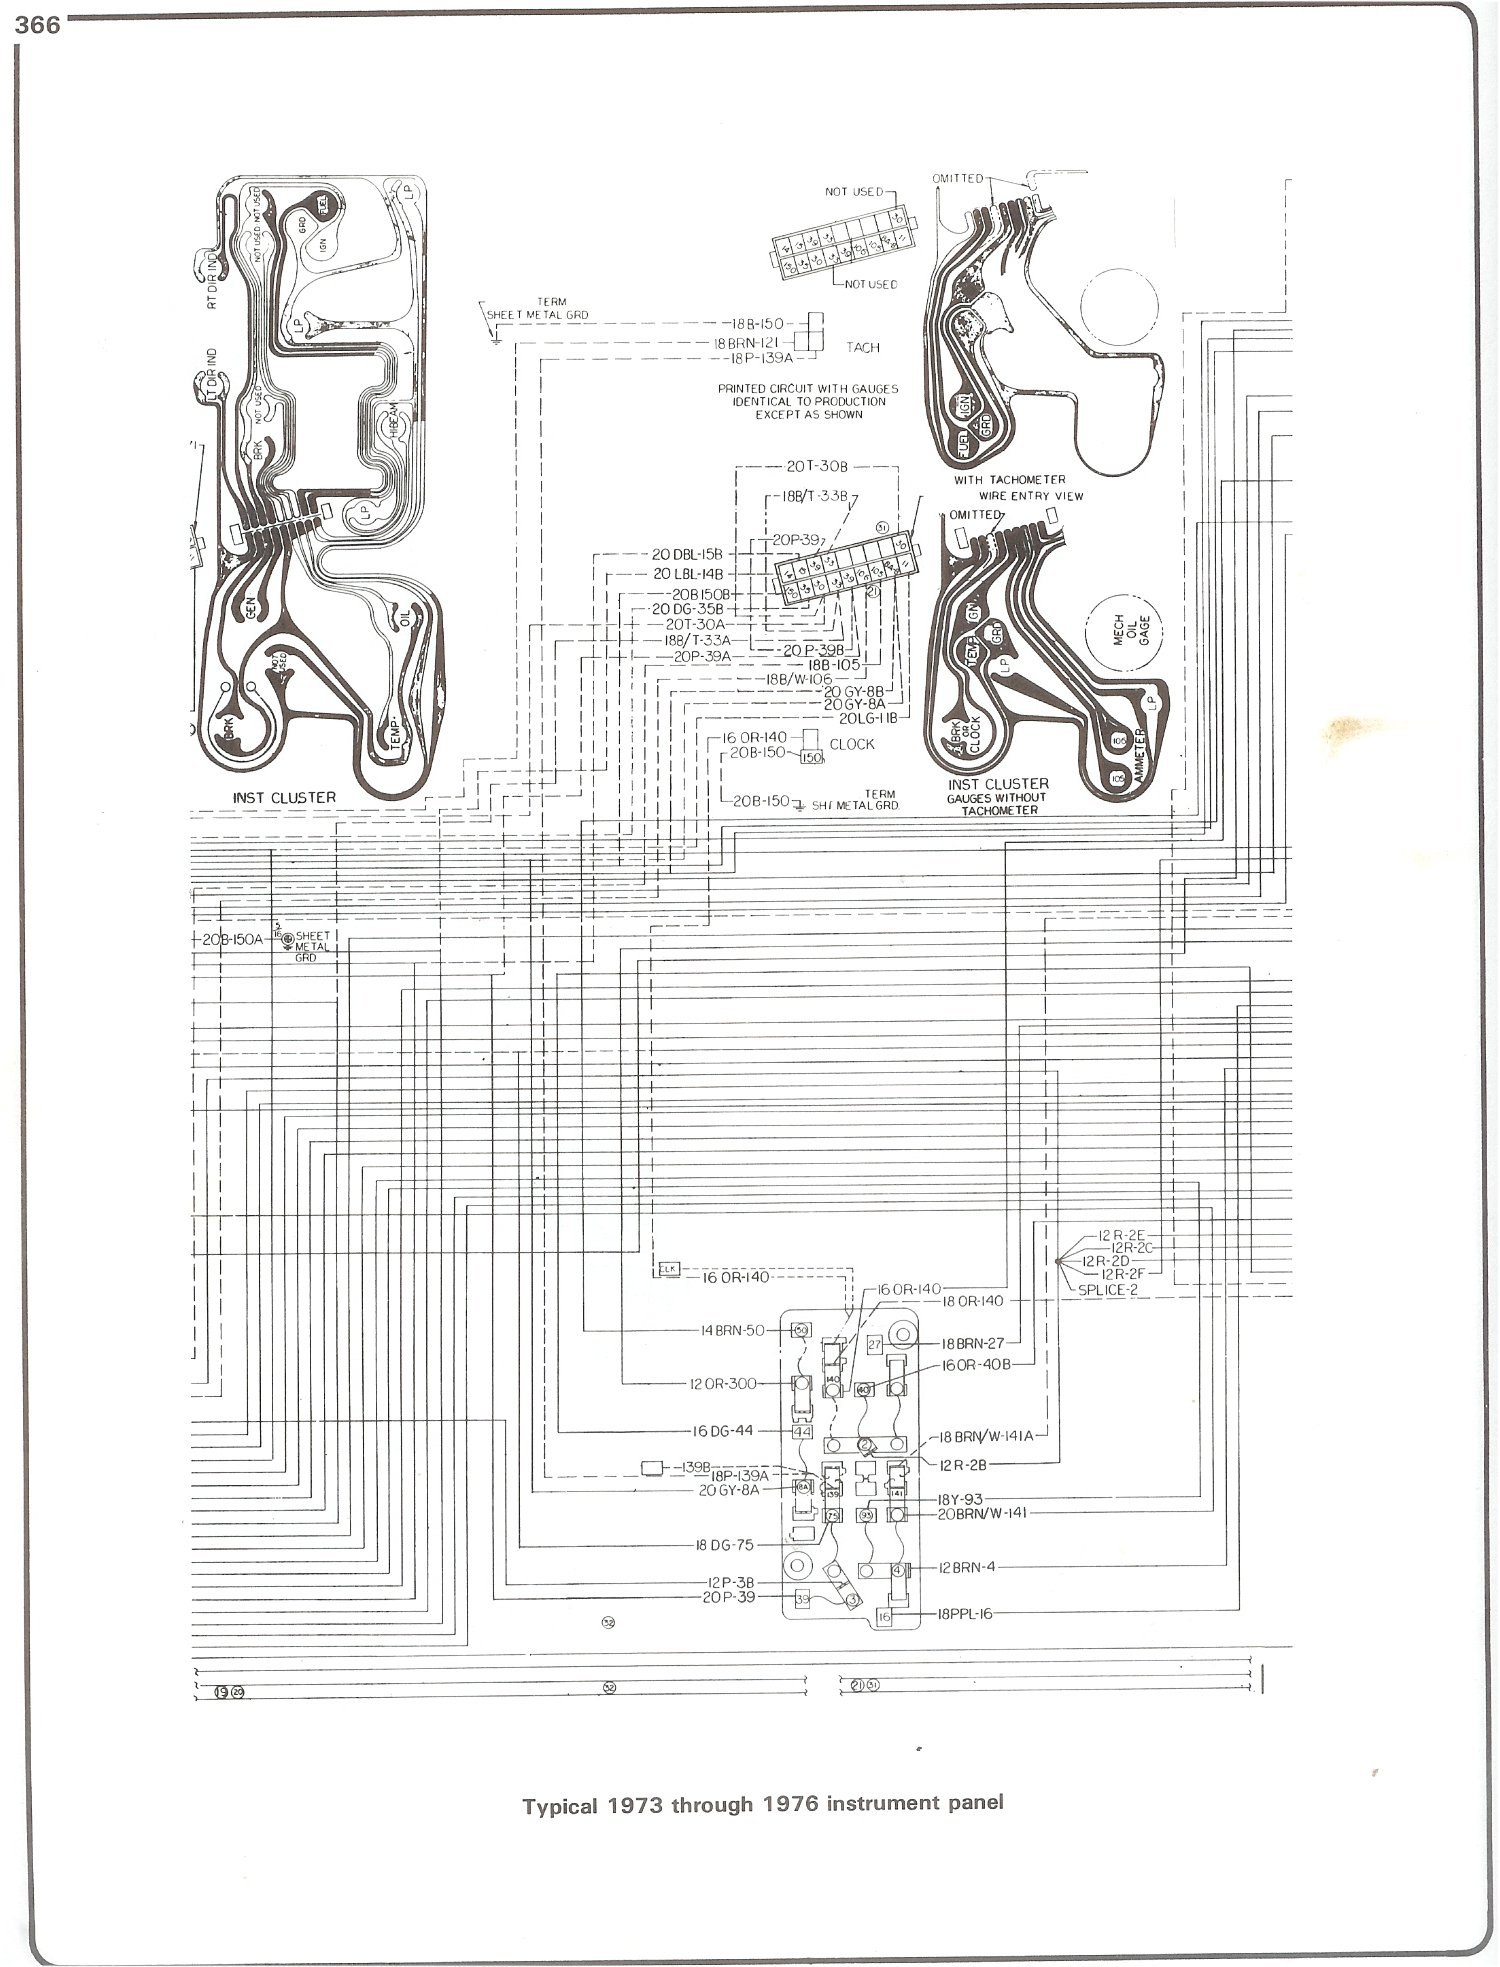 Wiring Diagram For 1977 Chevy Truck, Wiring, Free Engine